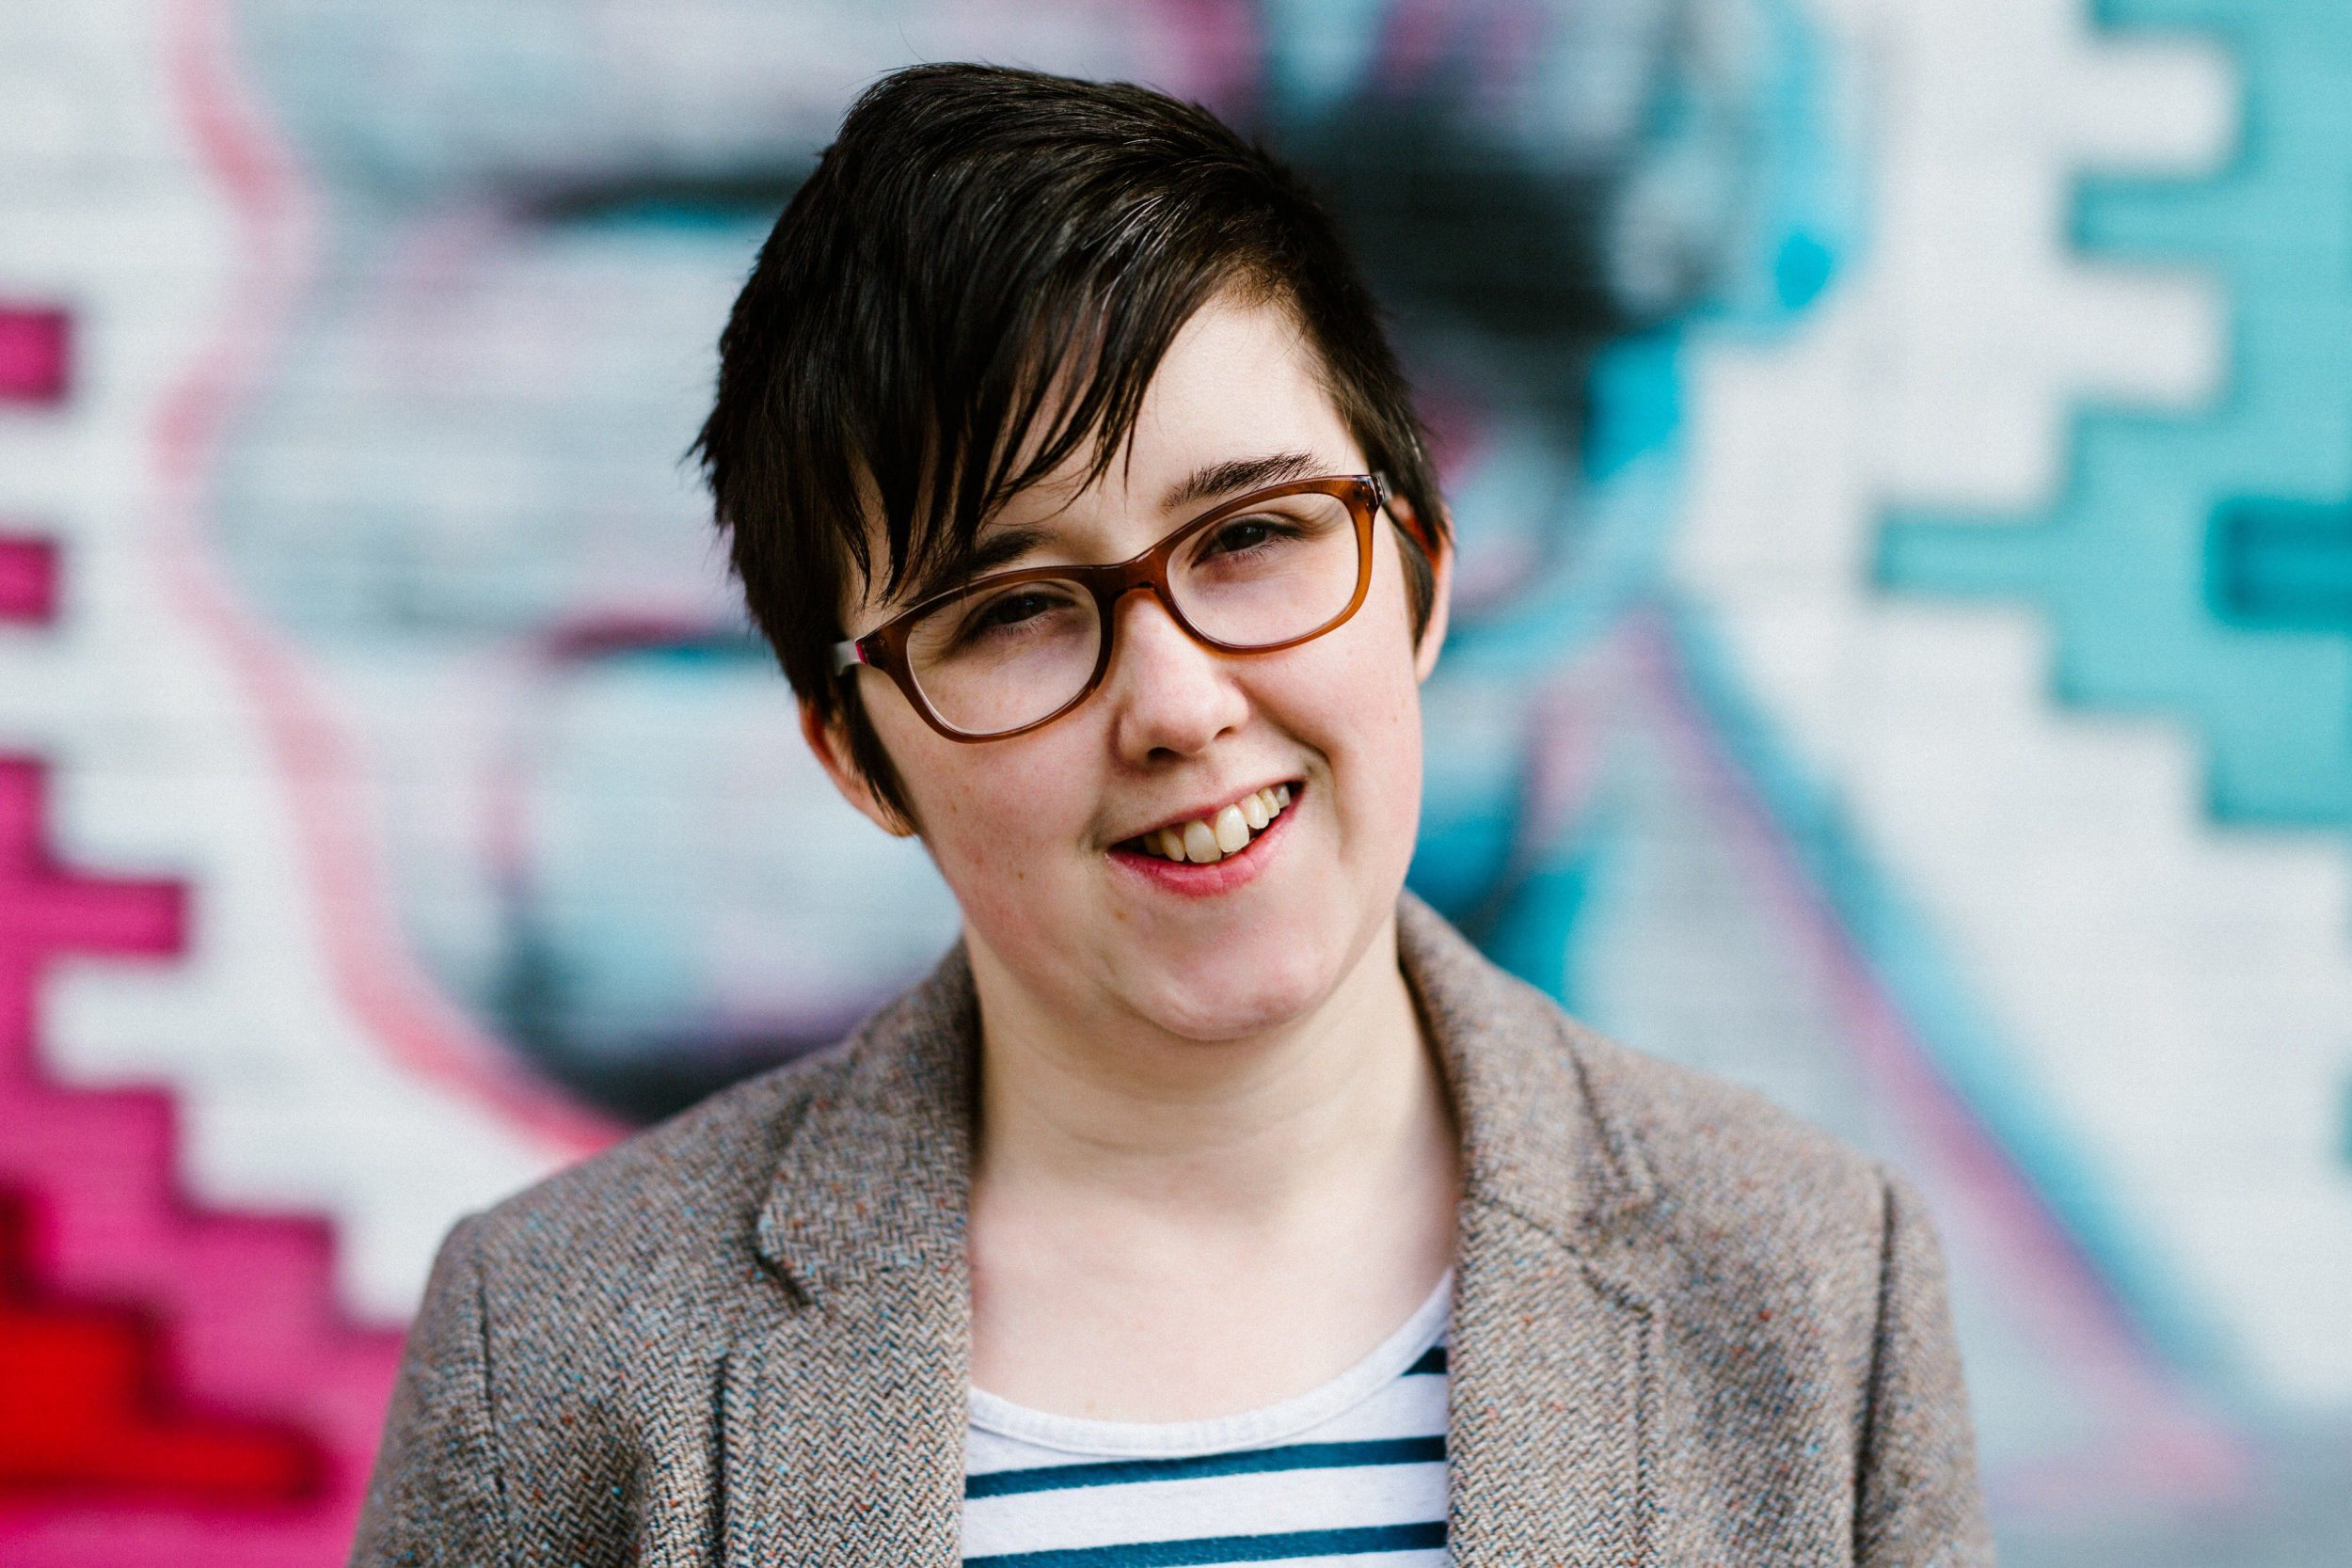 Jouralist Lyra McKee smiling while looking into the camera